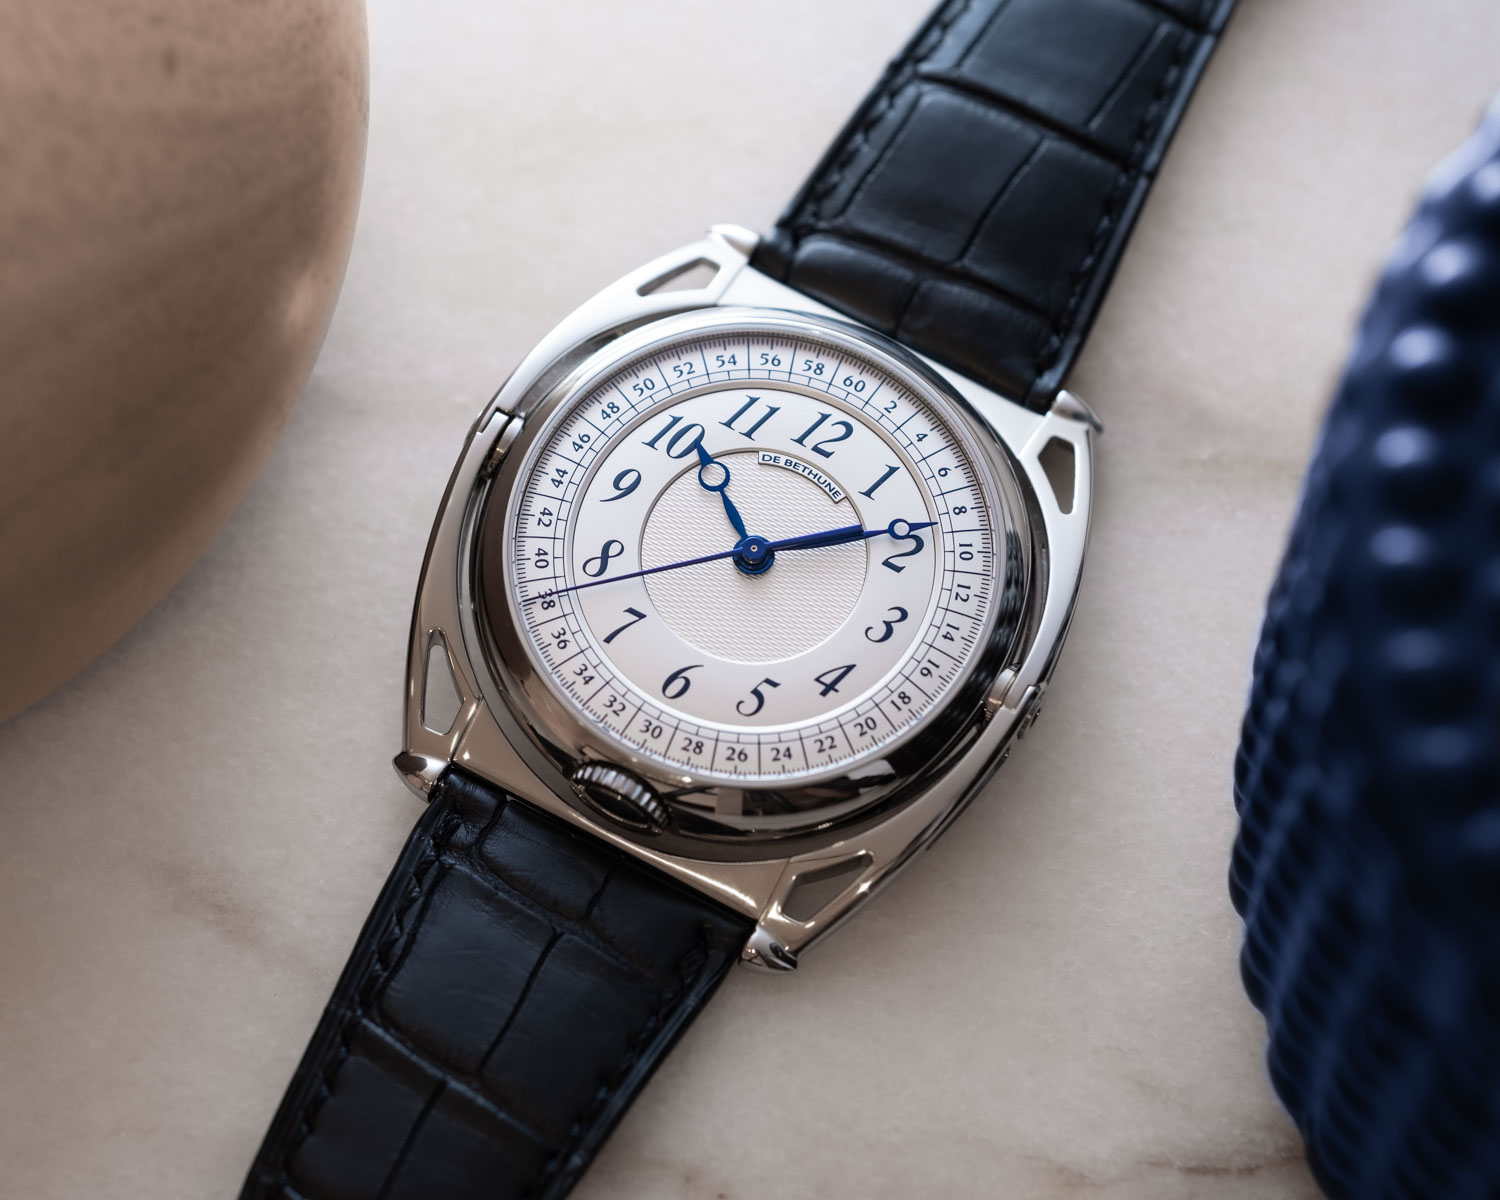 The alternate side of the two-sided De Bethune DB Kind of Two Tourbillon showcases a more classic face with hand-polished and blued titanium hands for hours, minutes and seconds